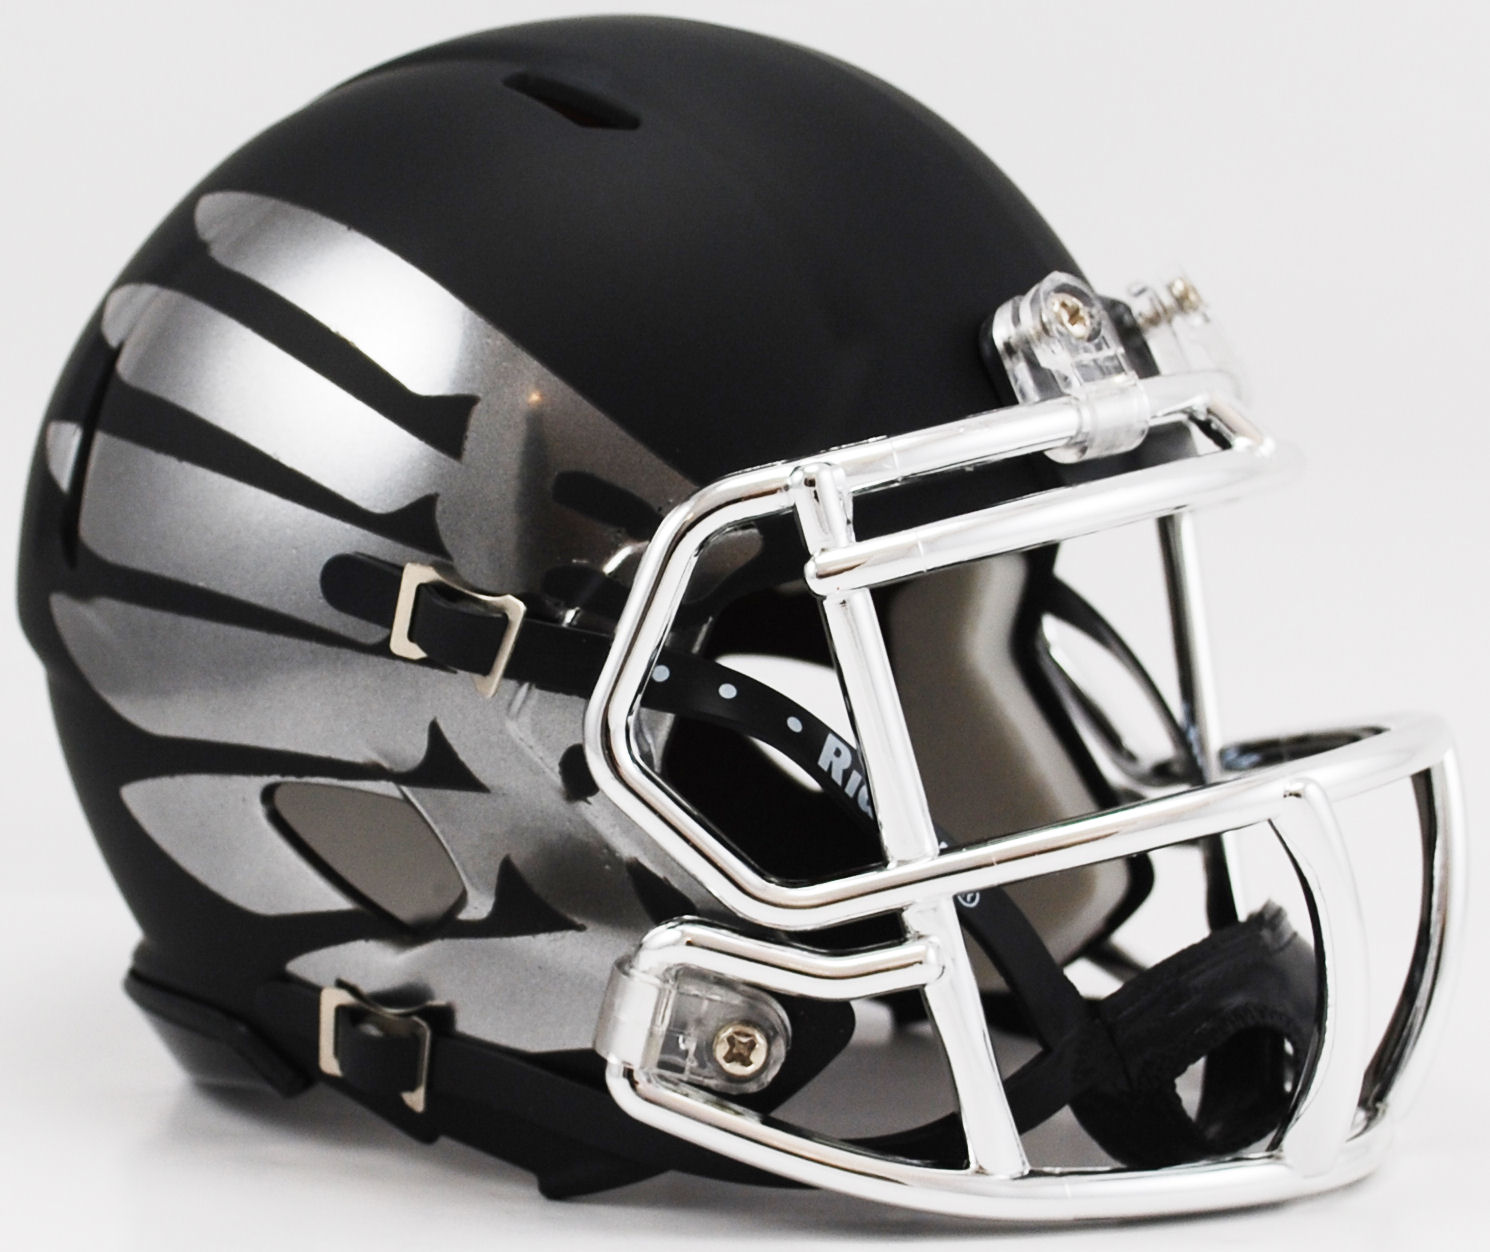 Oregon Ducks LiquidMetal Mini Football Helmet <B>Titanium Black Eclipse HydroSkin</B>